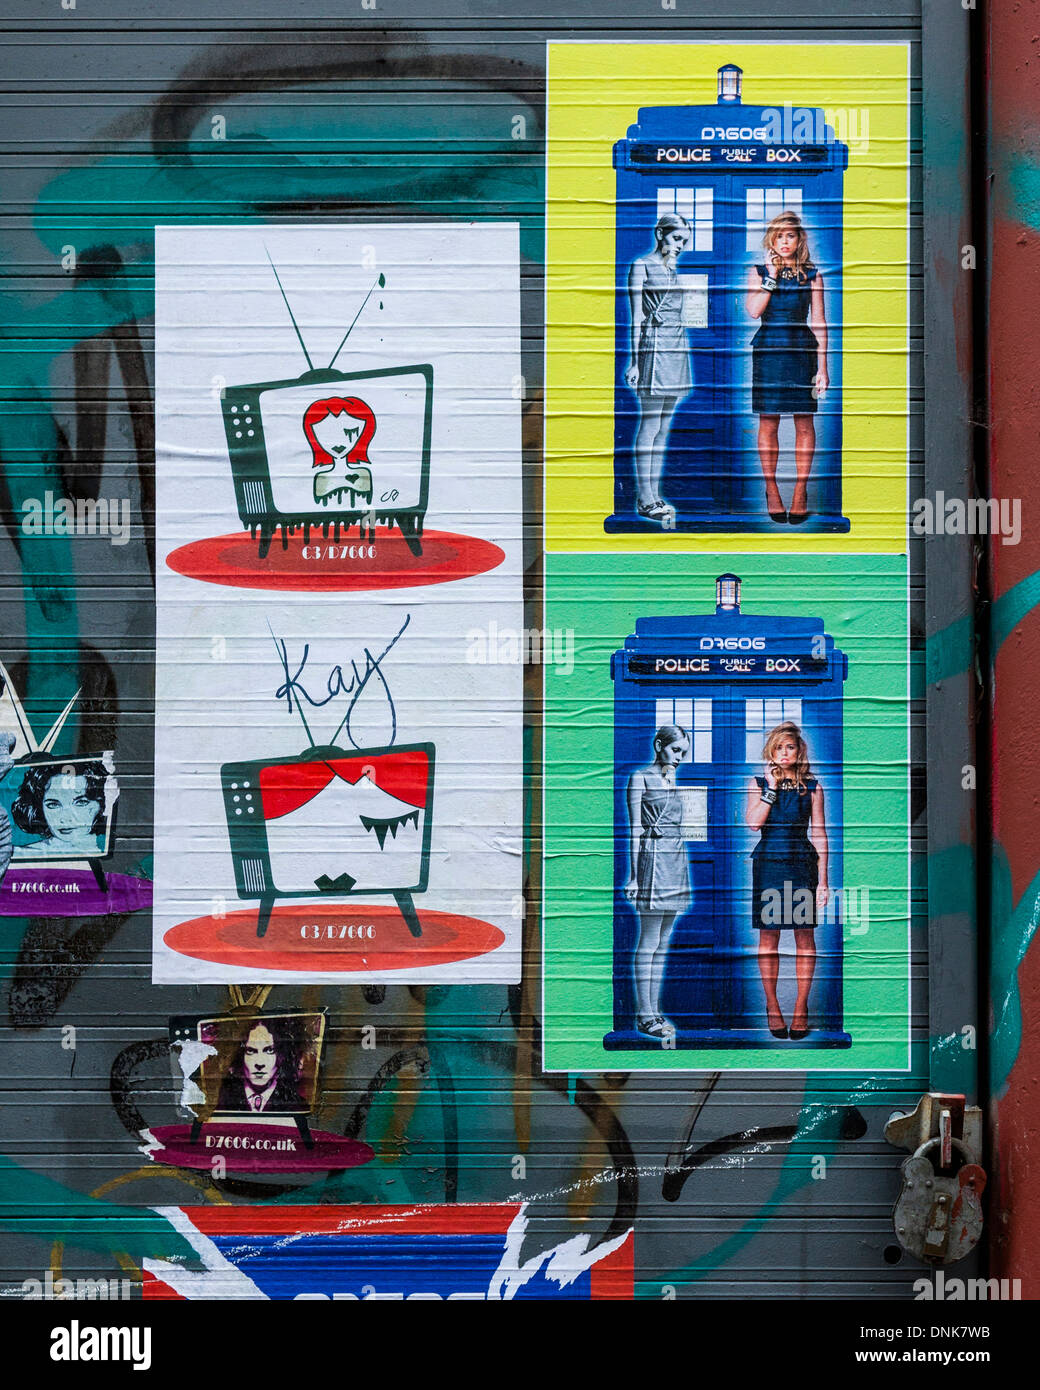 C3/D7606 - Posters of Police box, models and television sets - Grimsby street , East London, UK - Stock Image